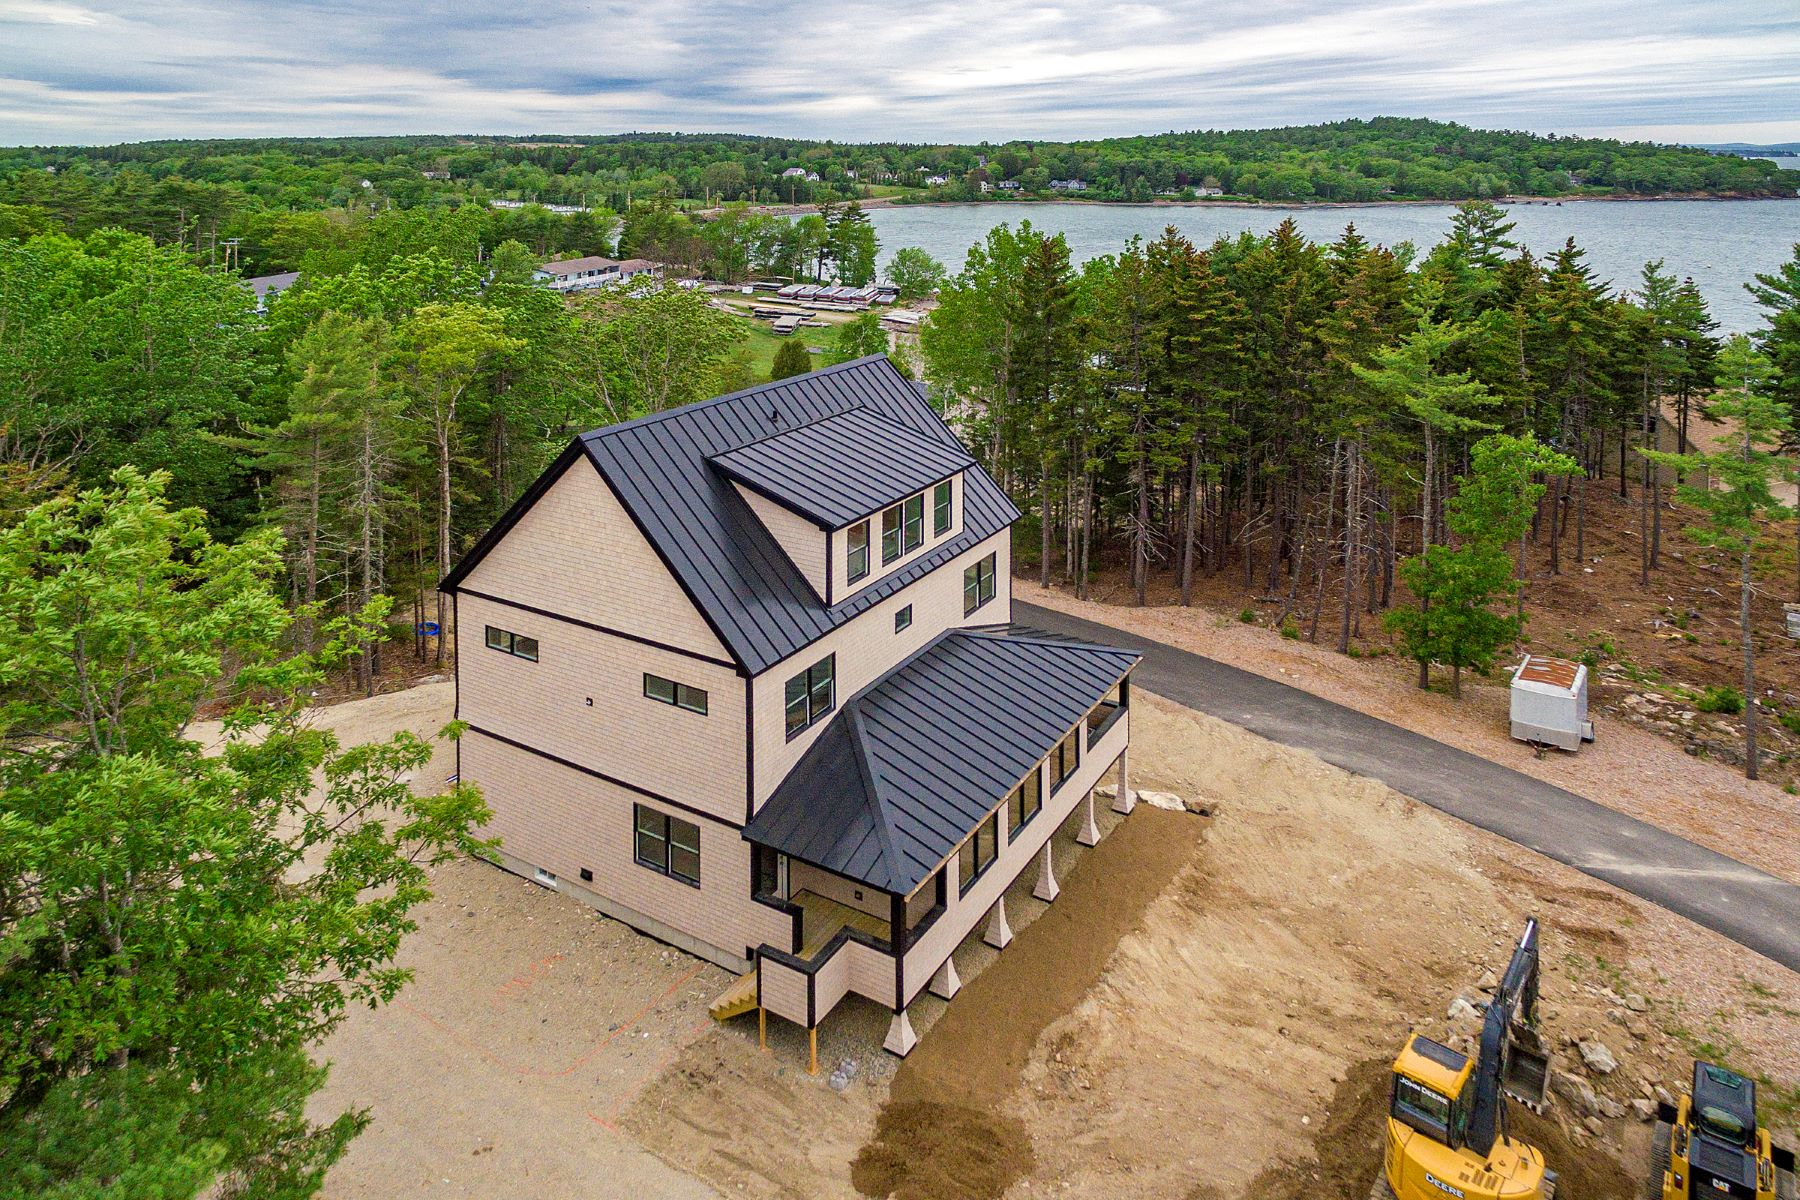 Single Family Homes for Active at 6 Bogue Chitto Lane Bar Harbor, Maine 04609 United States